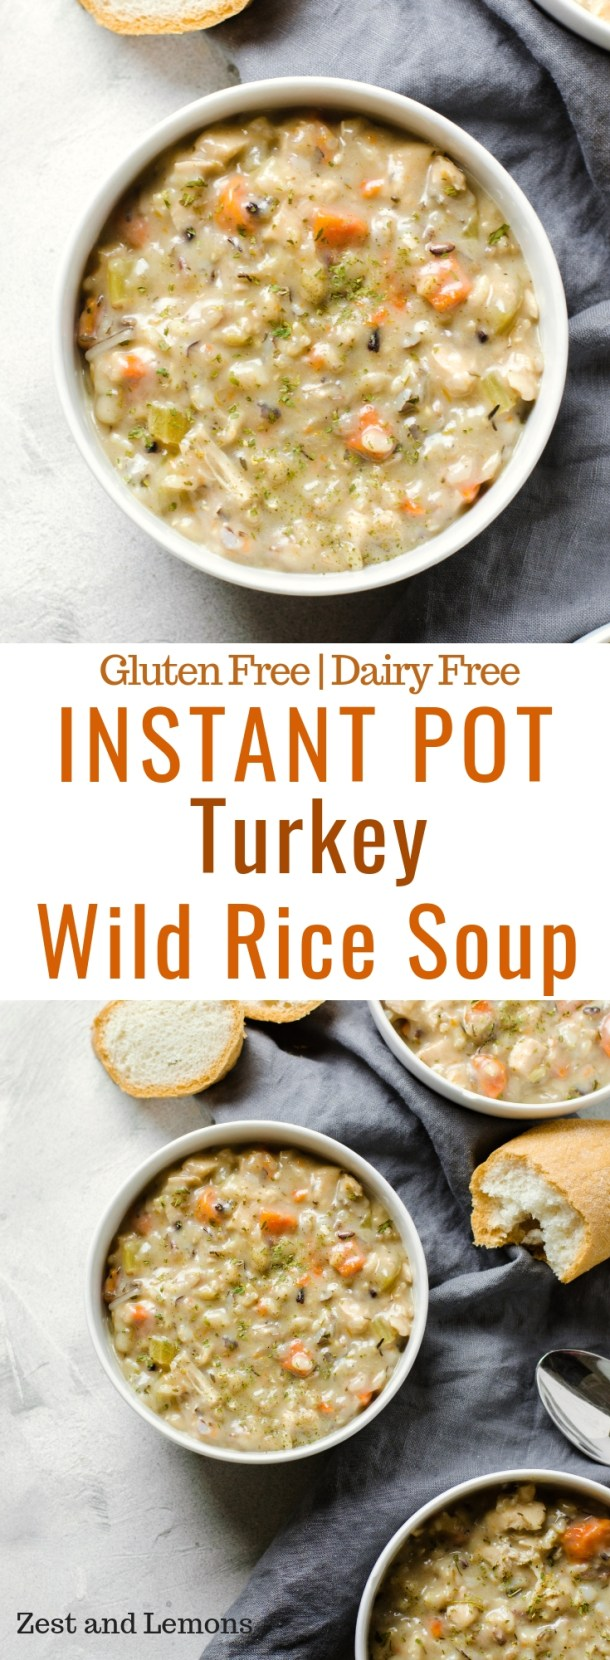 Instant Pot Turkey Wild Rice Soup. A thick and creamy soup for this winter season, and perfect for using leftover Thanksgiving turkey! - Zest and Lemons